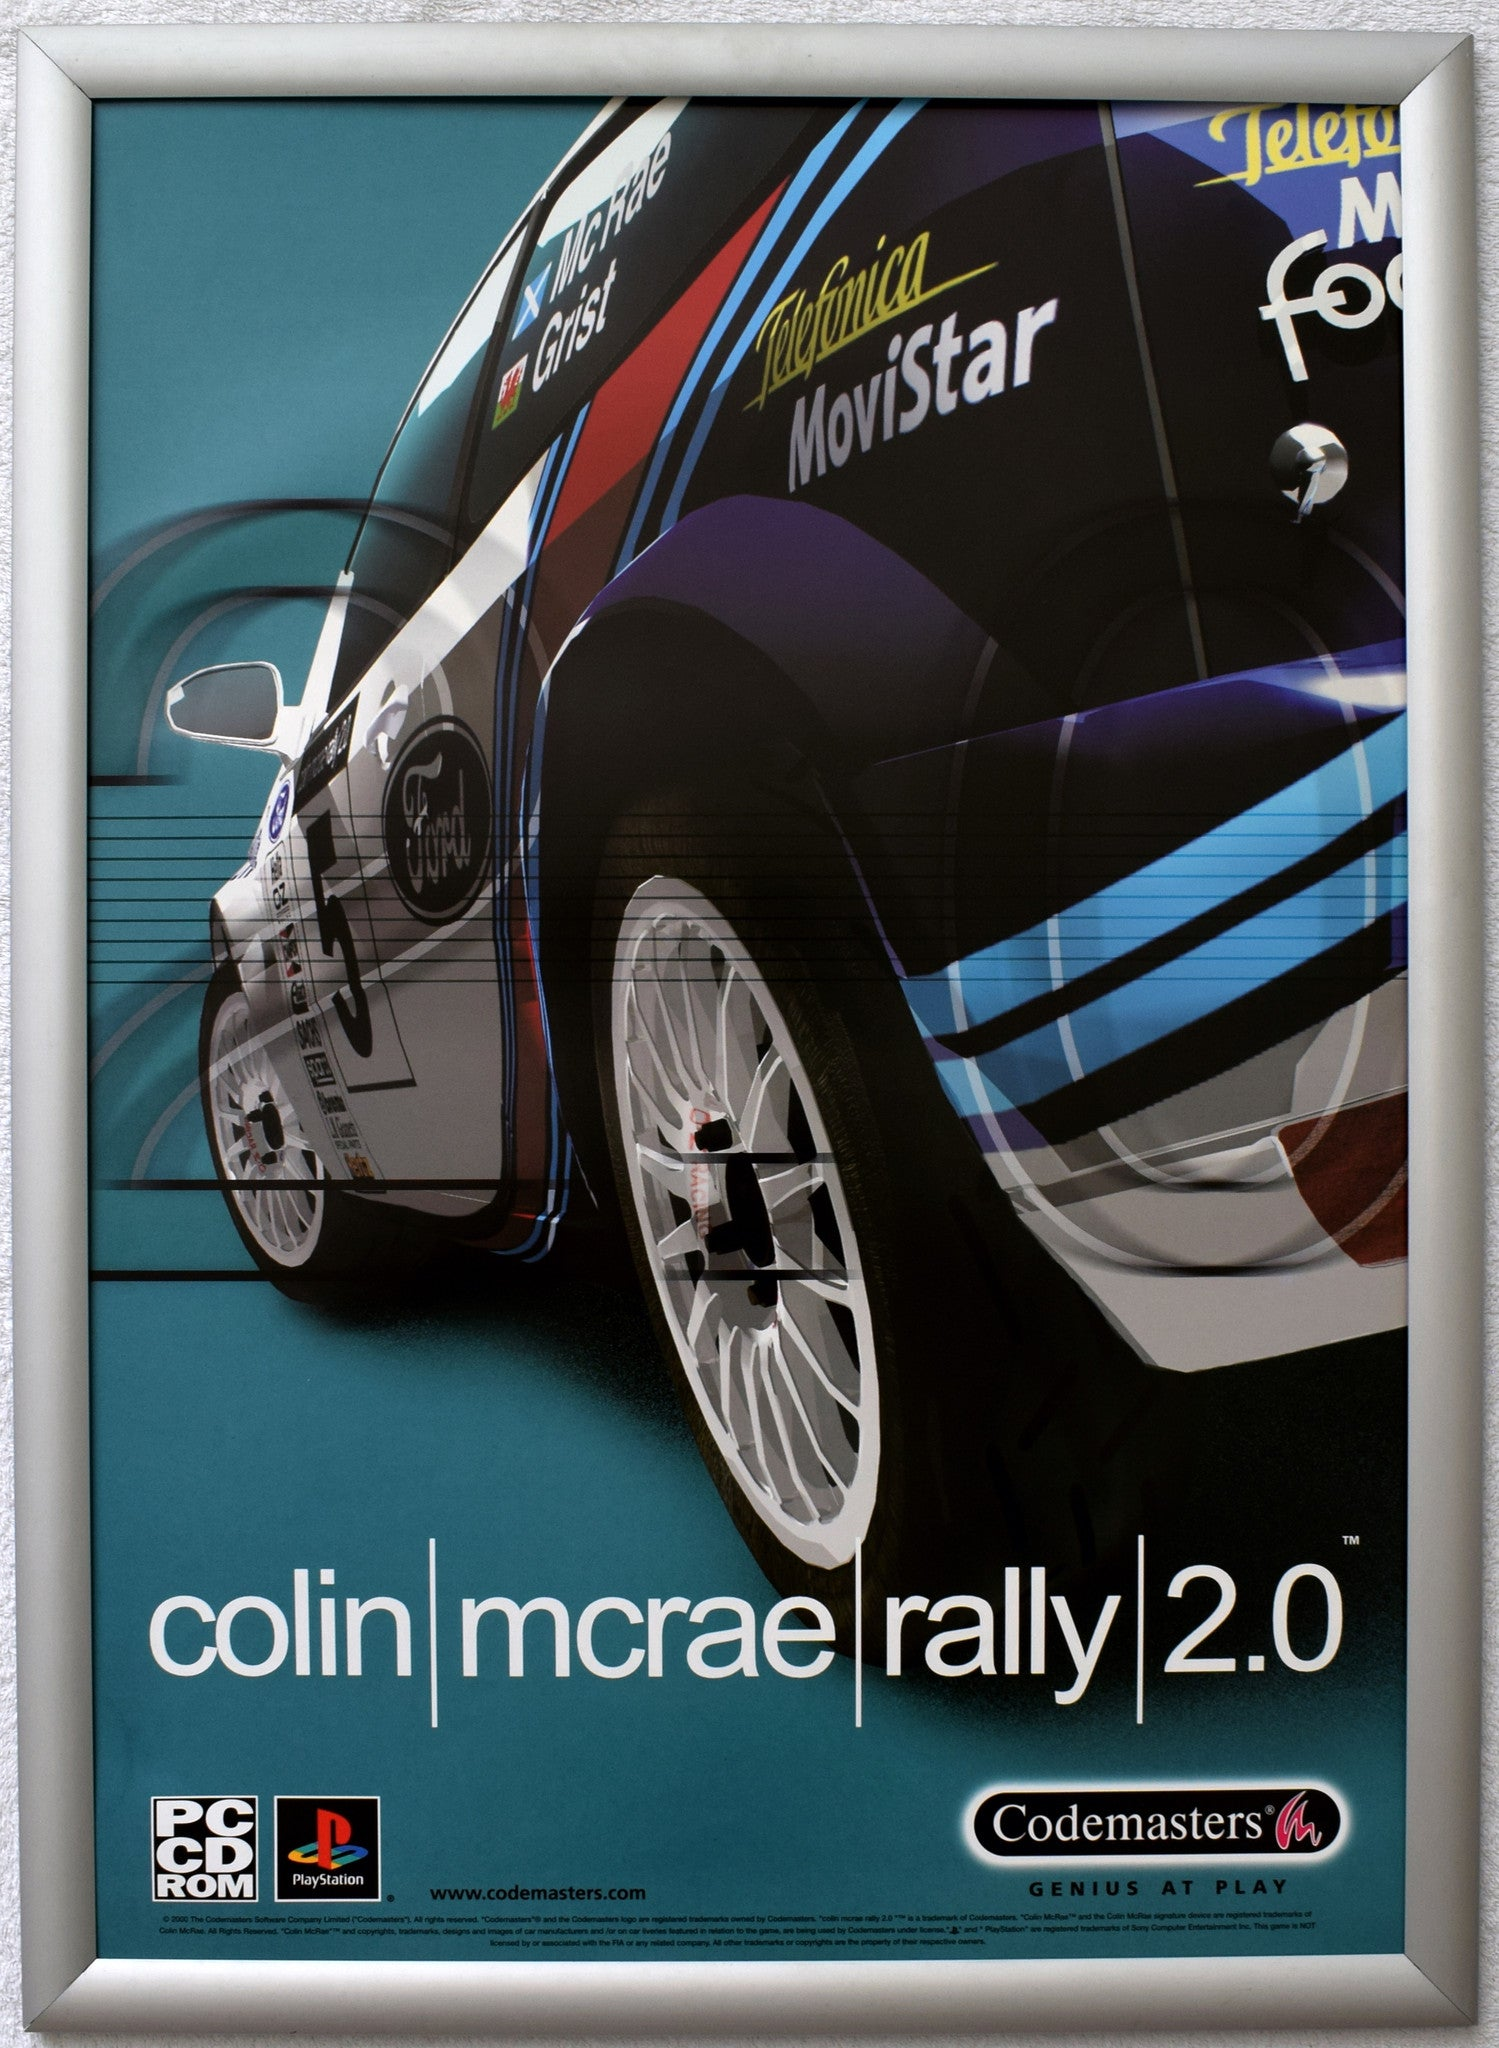 Colin Mcrae Rally Psx Iso Collection - labelspoks